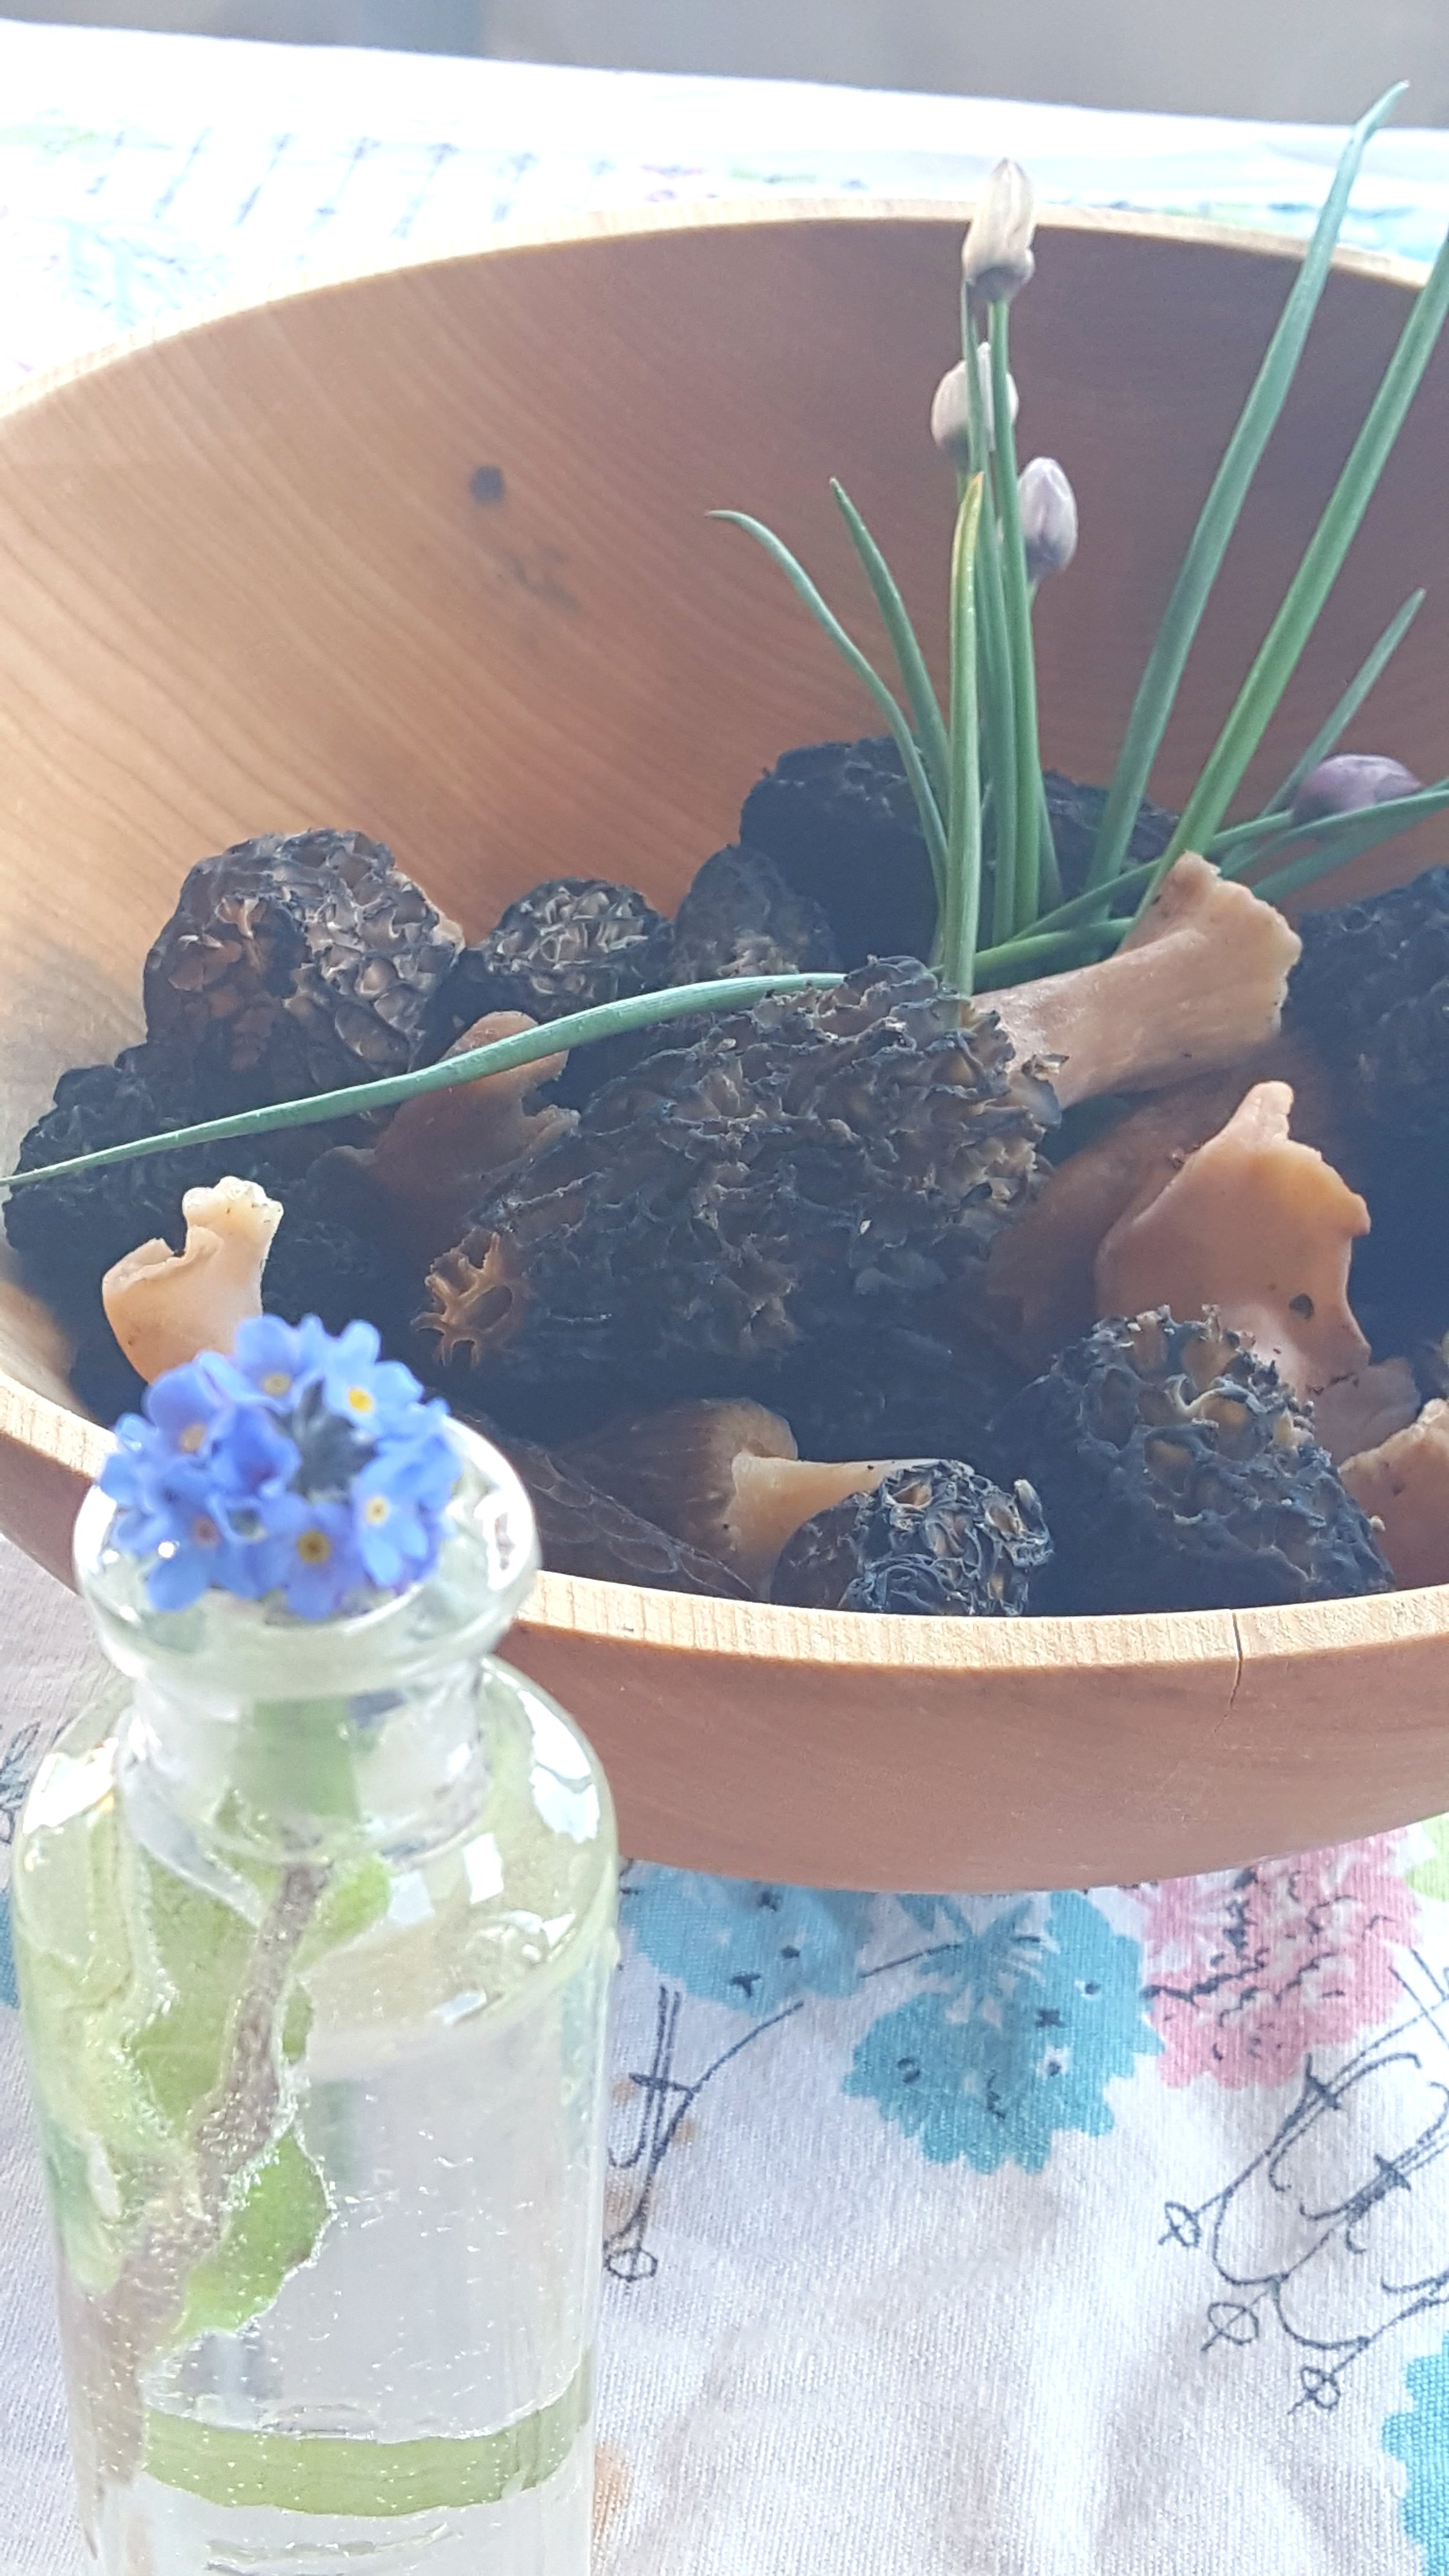 Wild chives, wild morel mushrooms, and Forget-Me-Nots (Alaska's state flower) all grow on our mountainsides. It's a treasure hunt to find the morels, but so worth it! We caught some Tanner crab and had morel mushrooms and Tanner crab omelettes. It doesn't get any better than this.